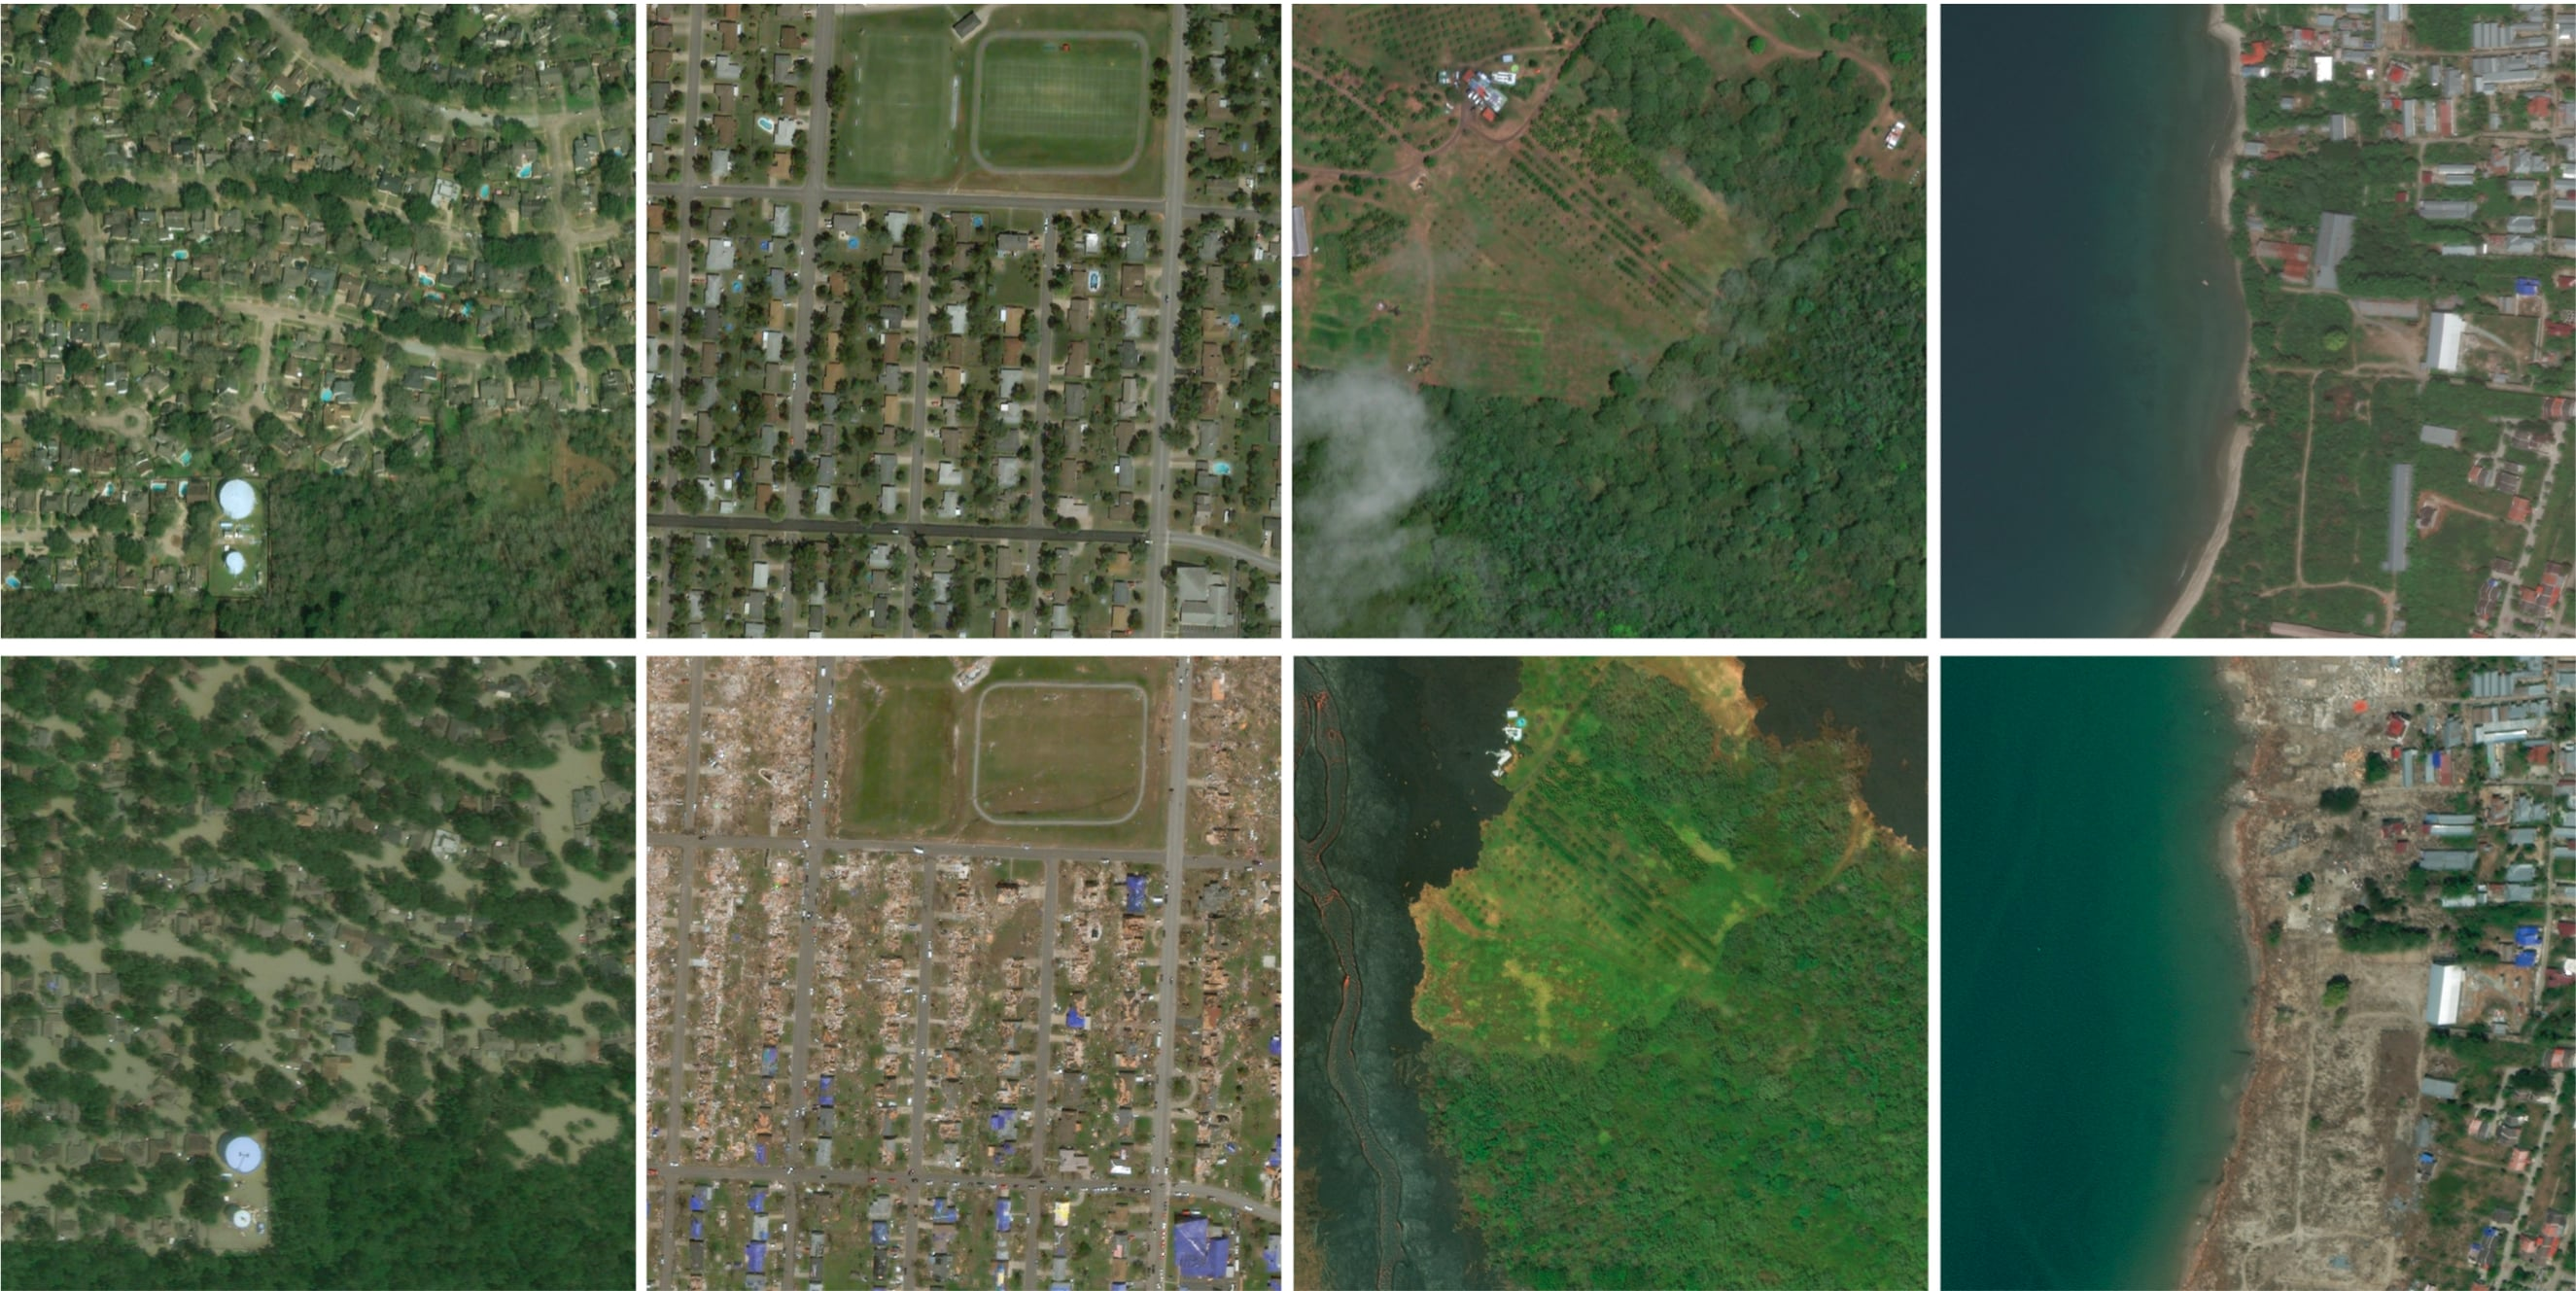 For training models, there are 9,168 pre-disaster/post-disaster 1024x1024 high resolution color images.